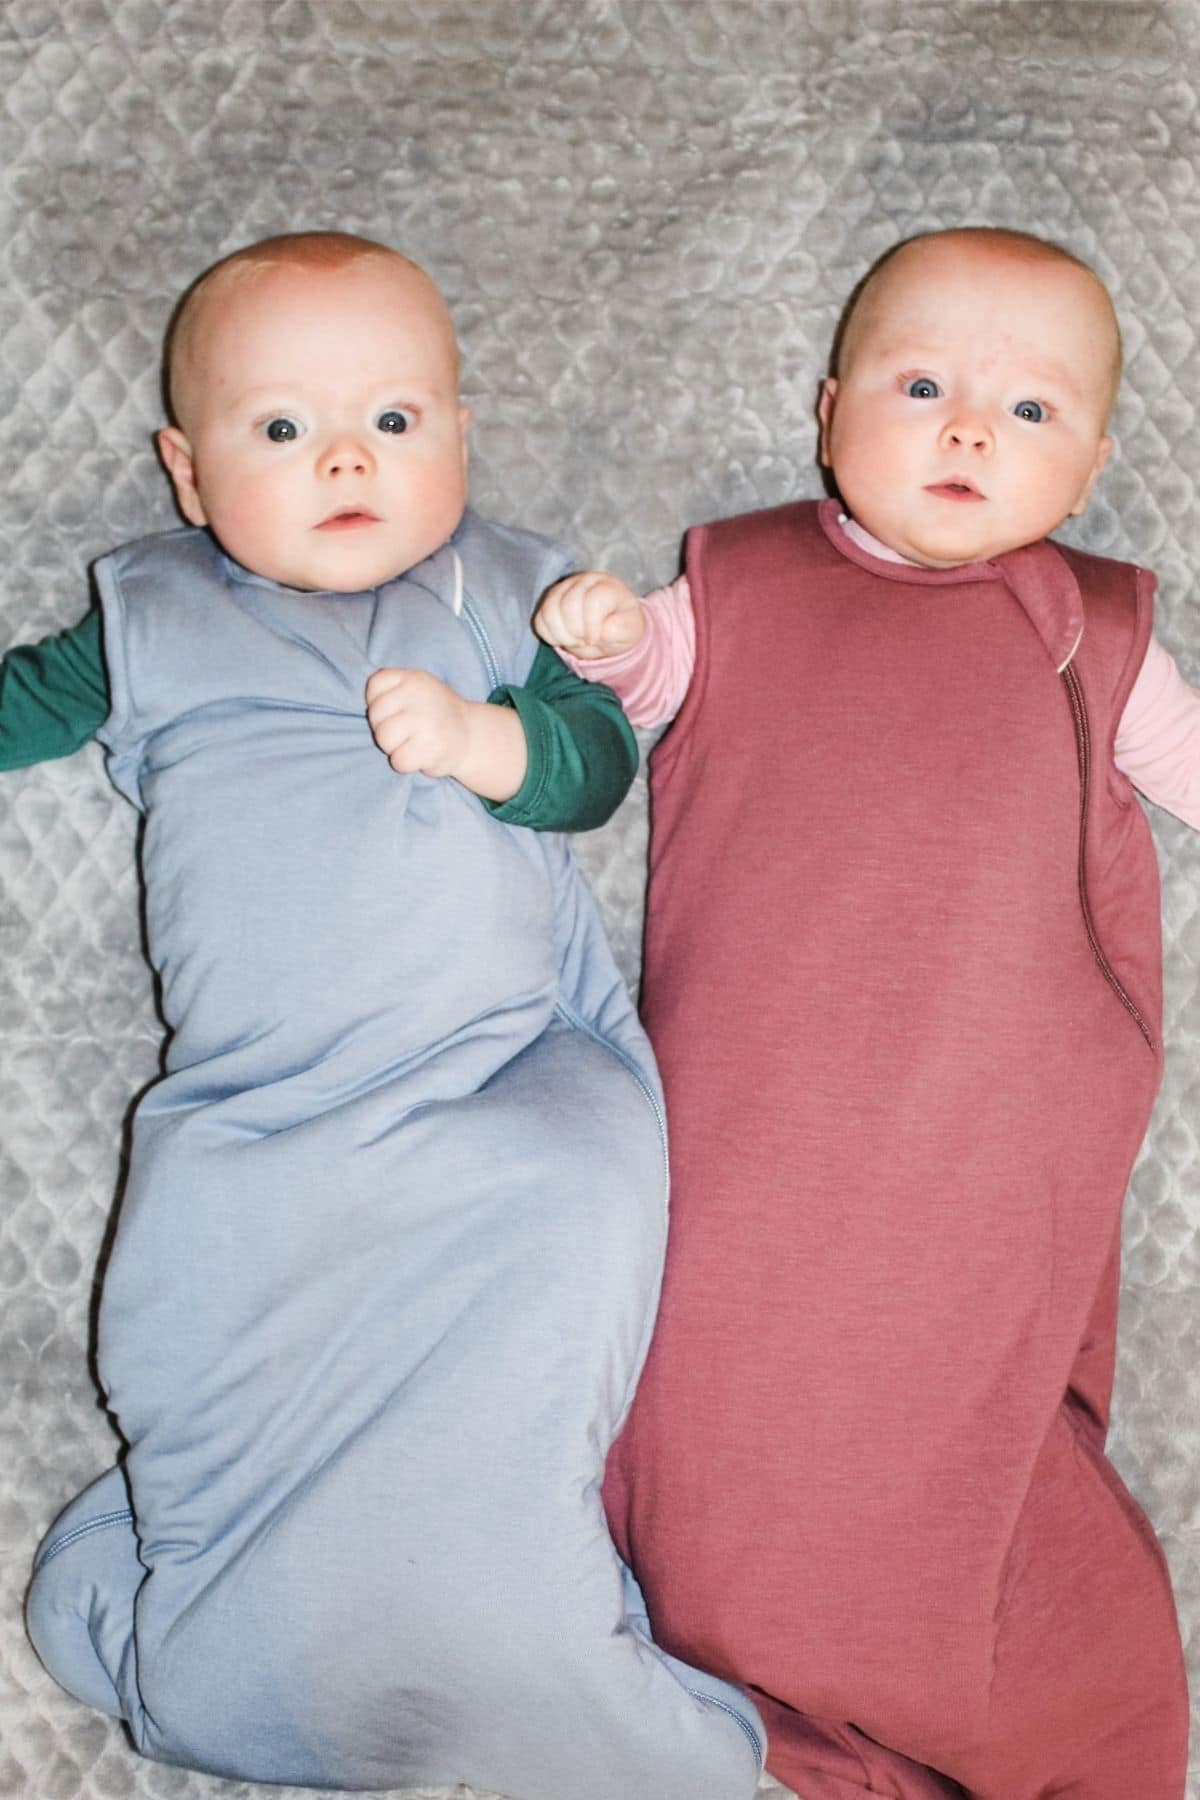 twin babies in kyte baby sleep bags that are blue and purple laying next to each other on a grey blanket